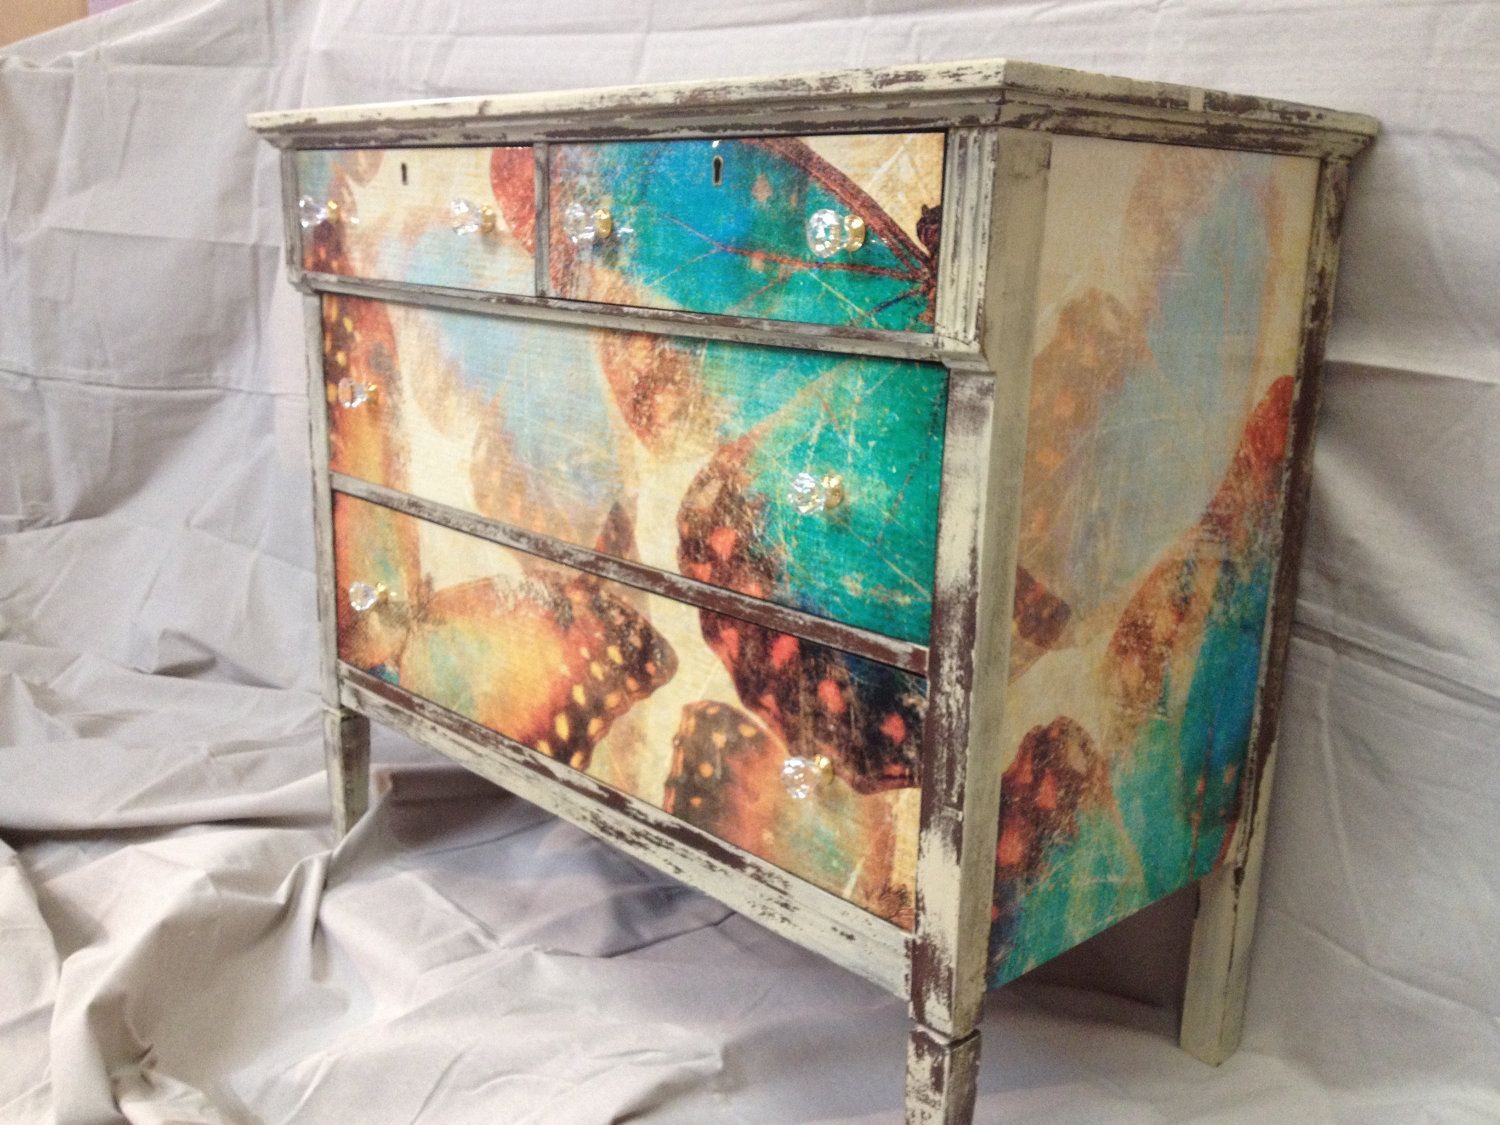 Refurbished Antique Dresser or Chest Milk Painted - Refurbished Antique Dresser Or Chest Milk Painted Dresser, Milk